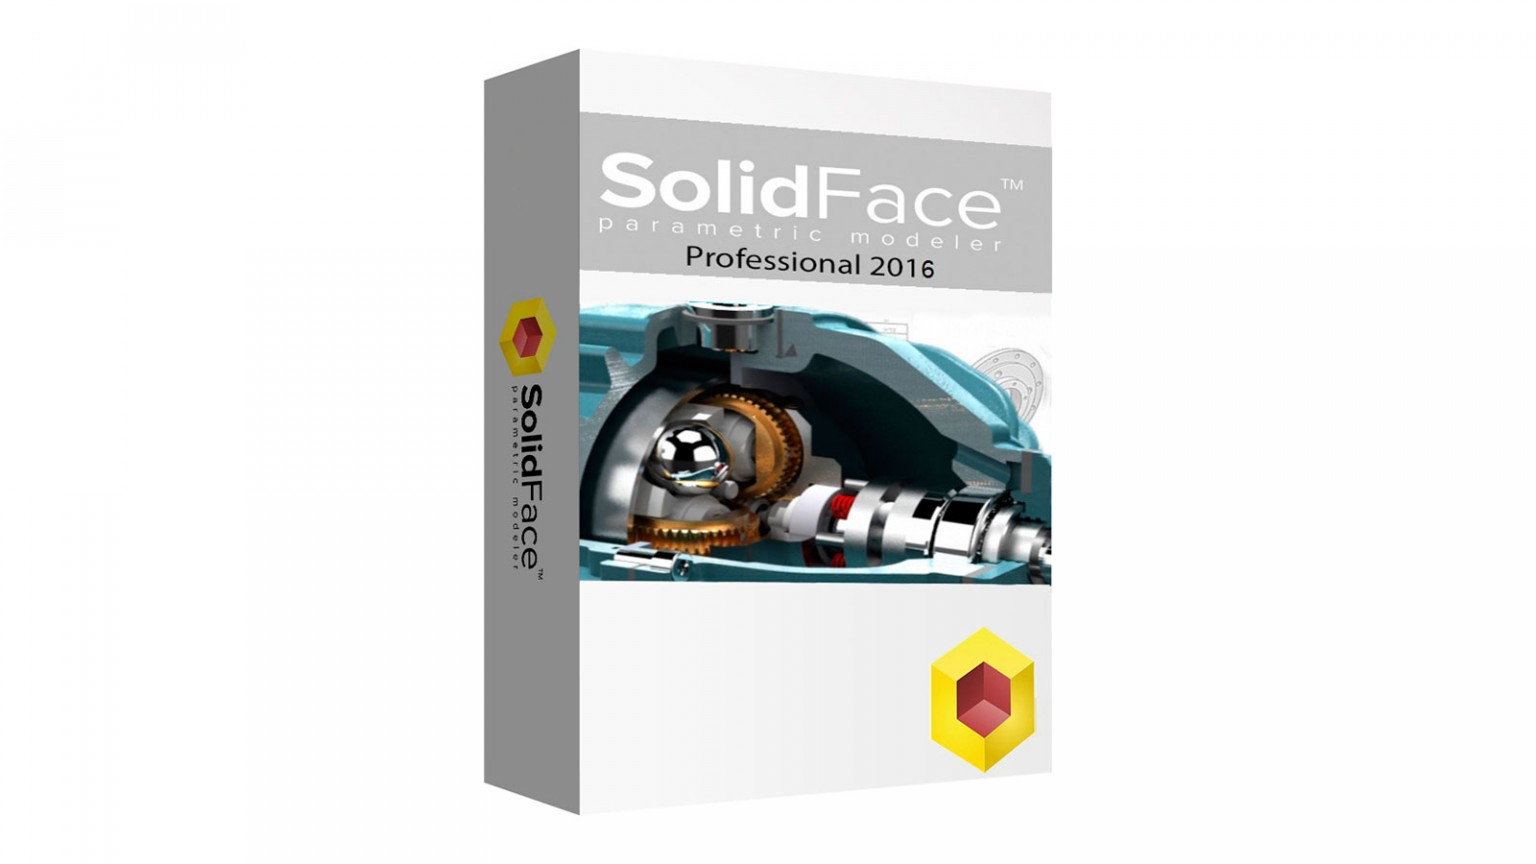 SolidFace Professional Perpetual License